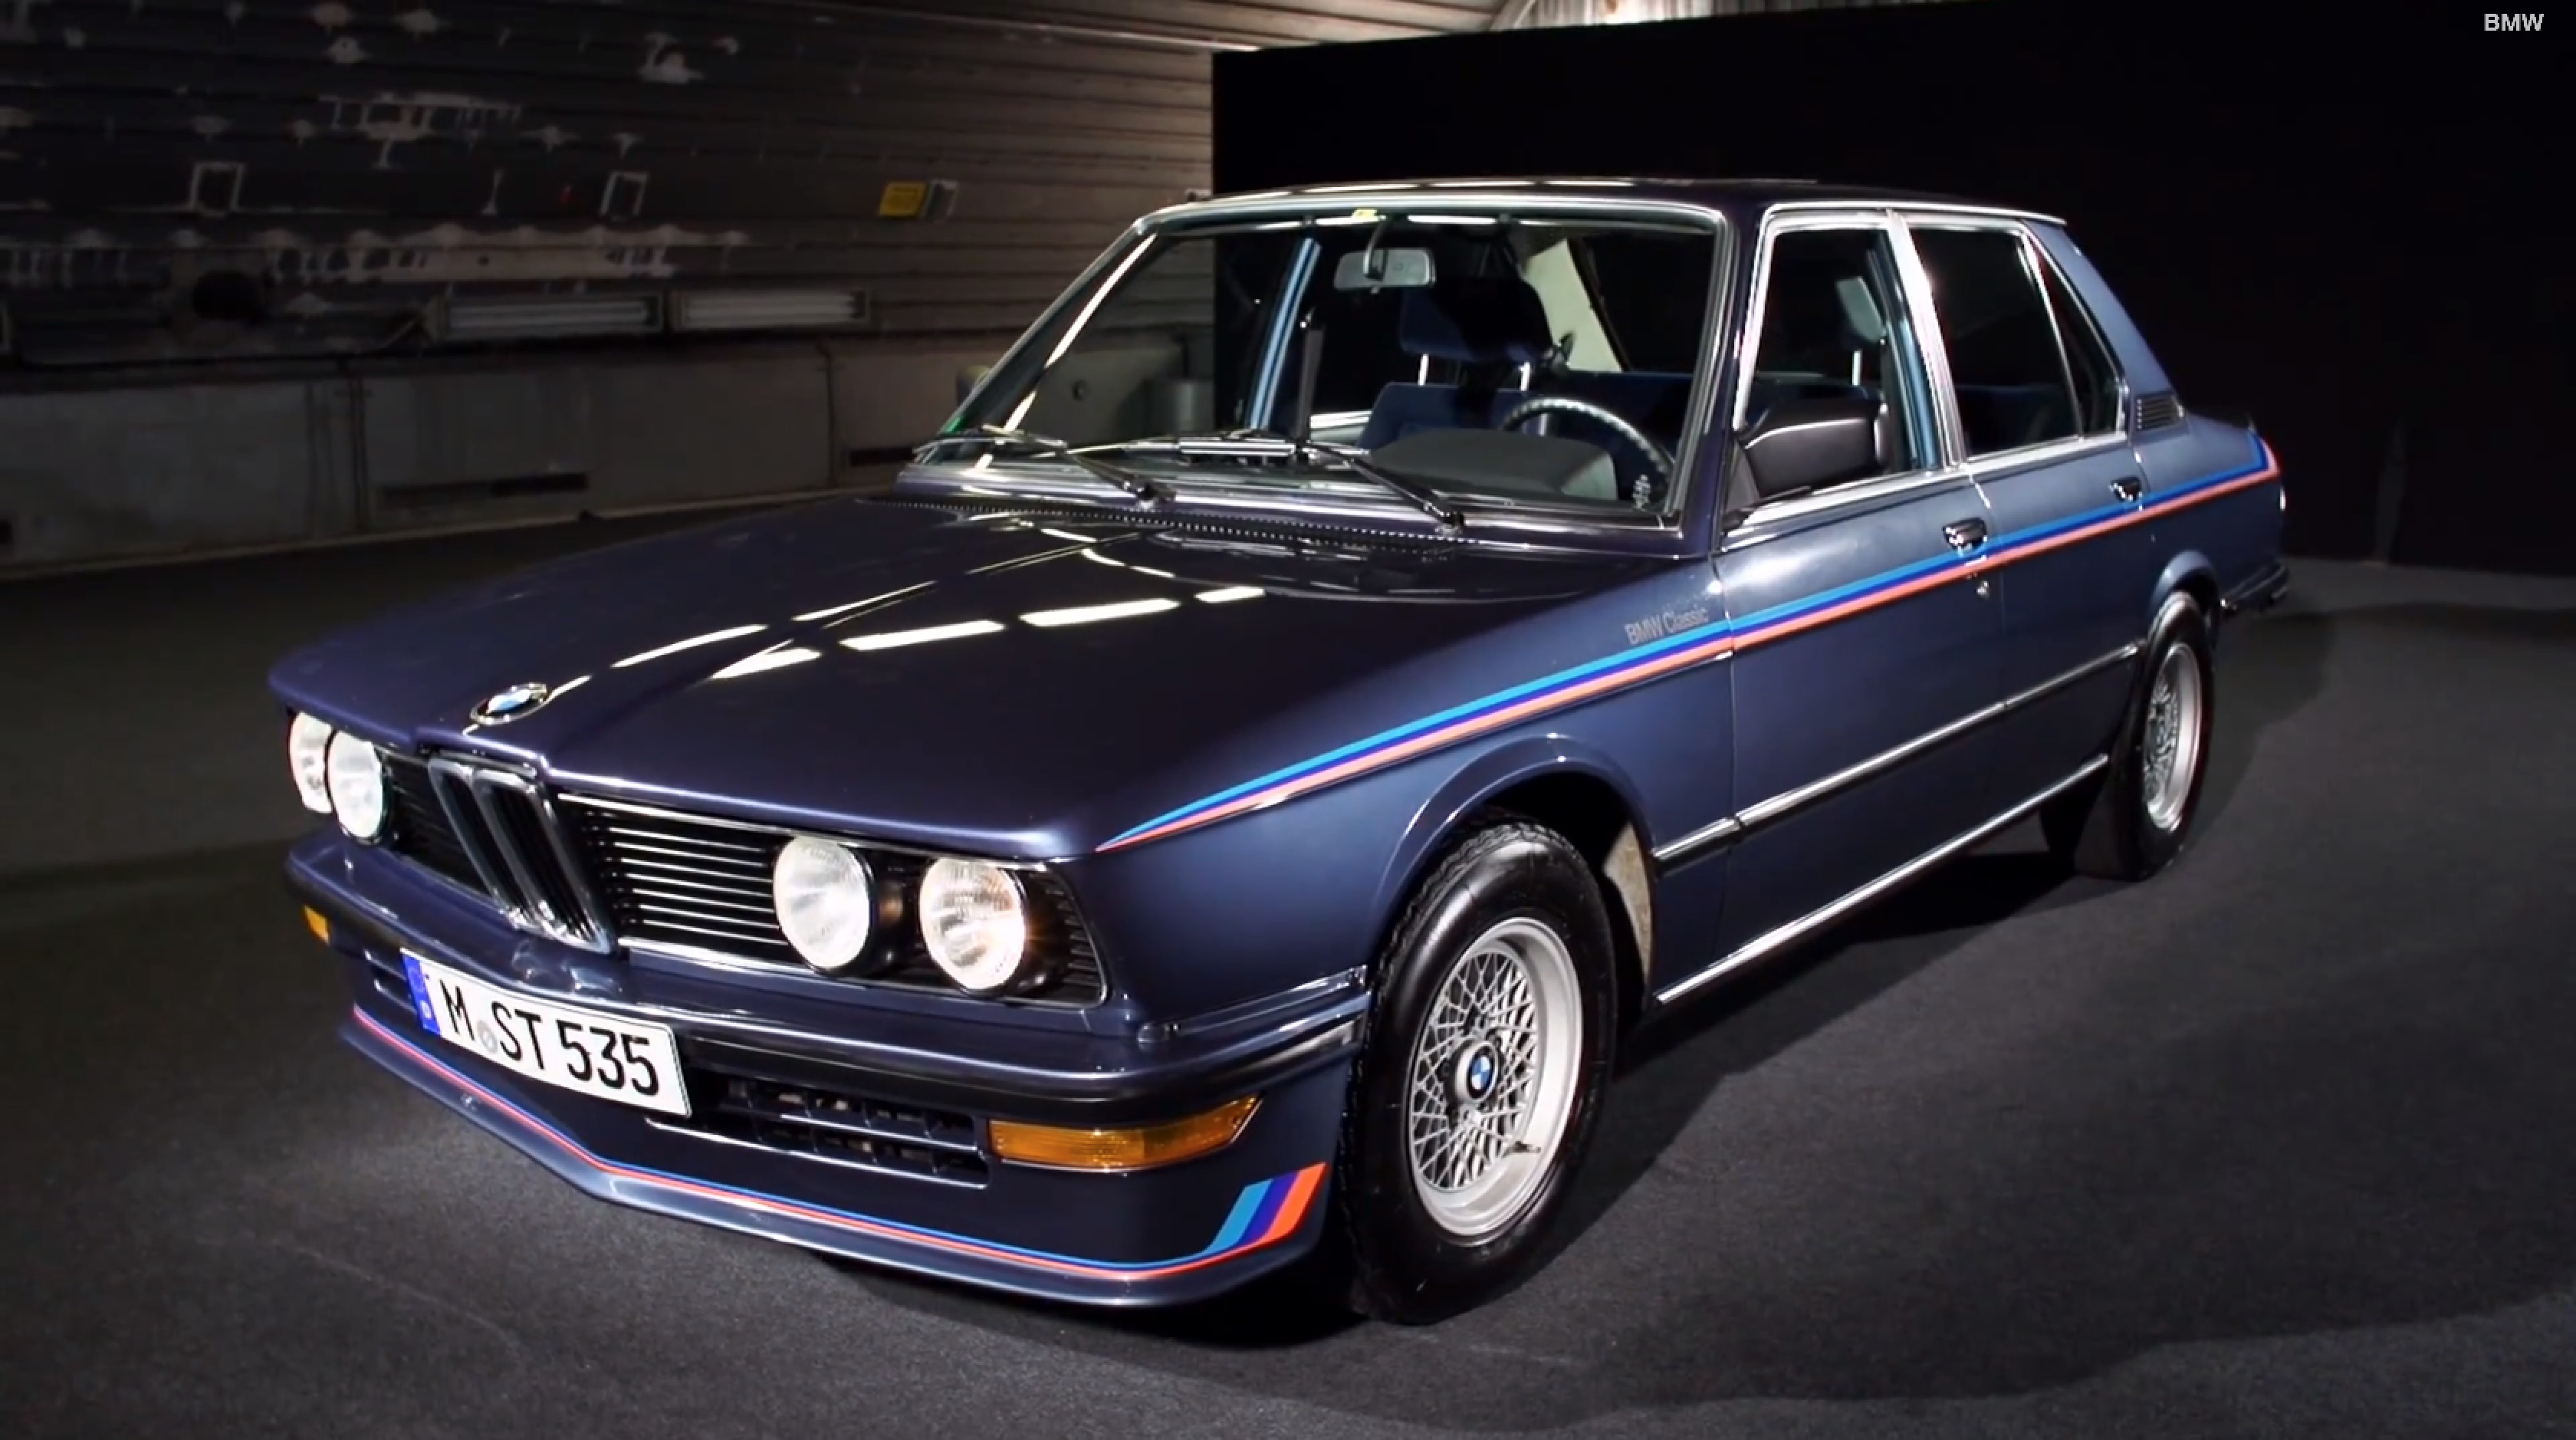 Video Epic Bmw M535i History